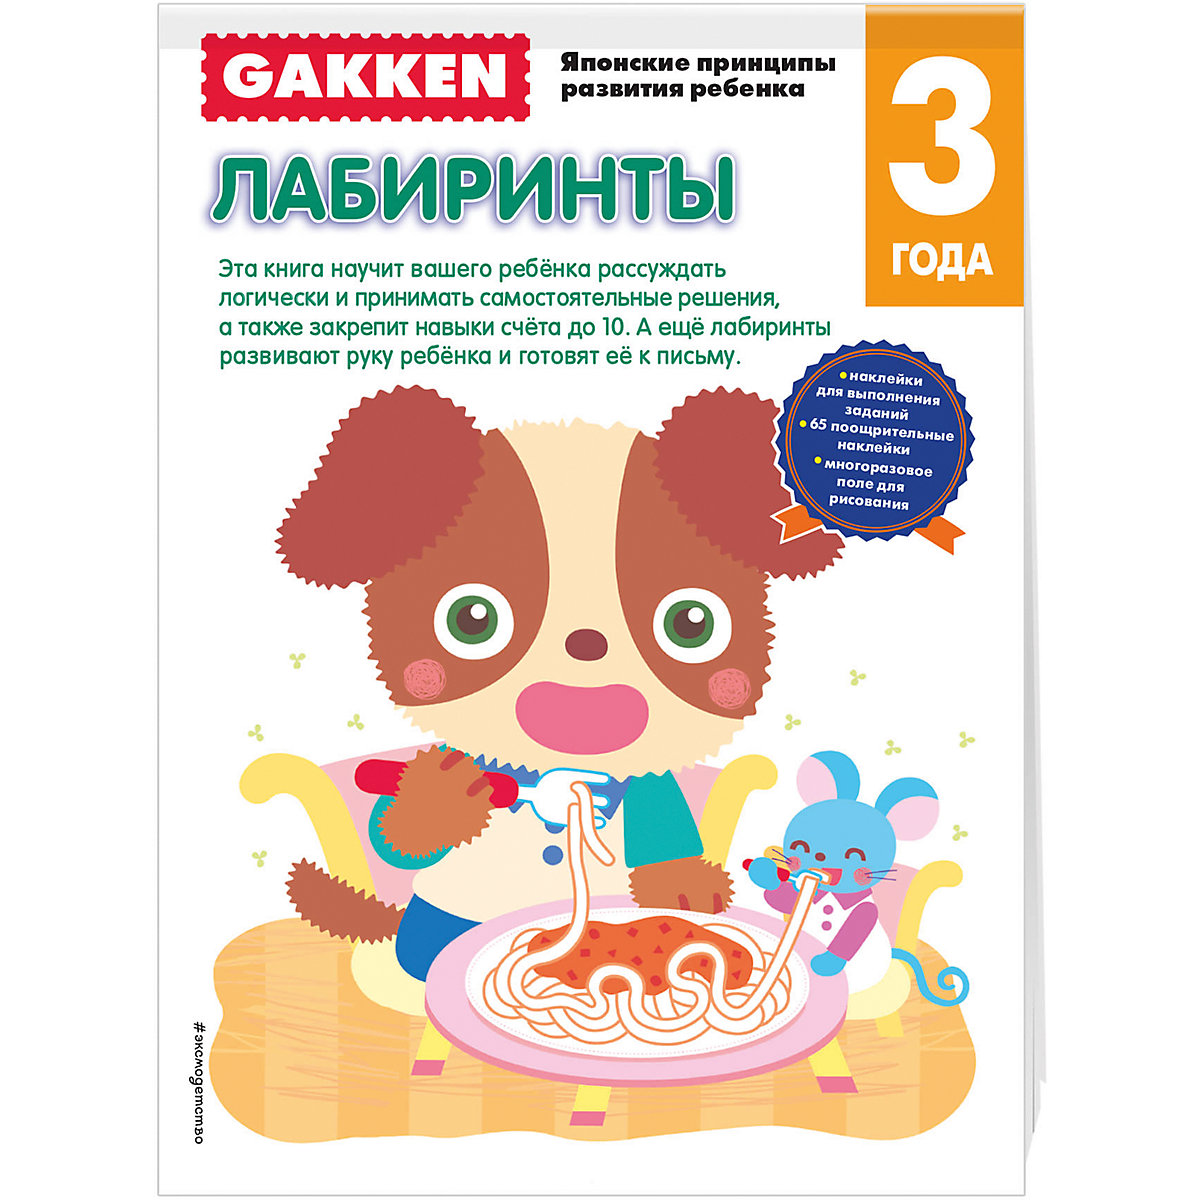 Books EKSMO 4400545 Children Education Encyclopedia Alphabet Dictionary Book For Baby MTpromo